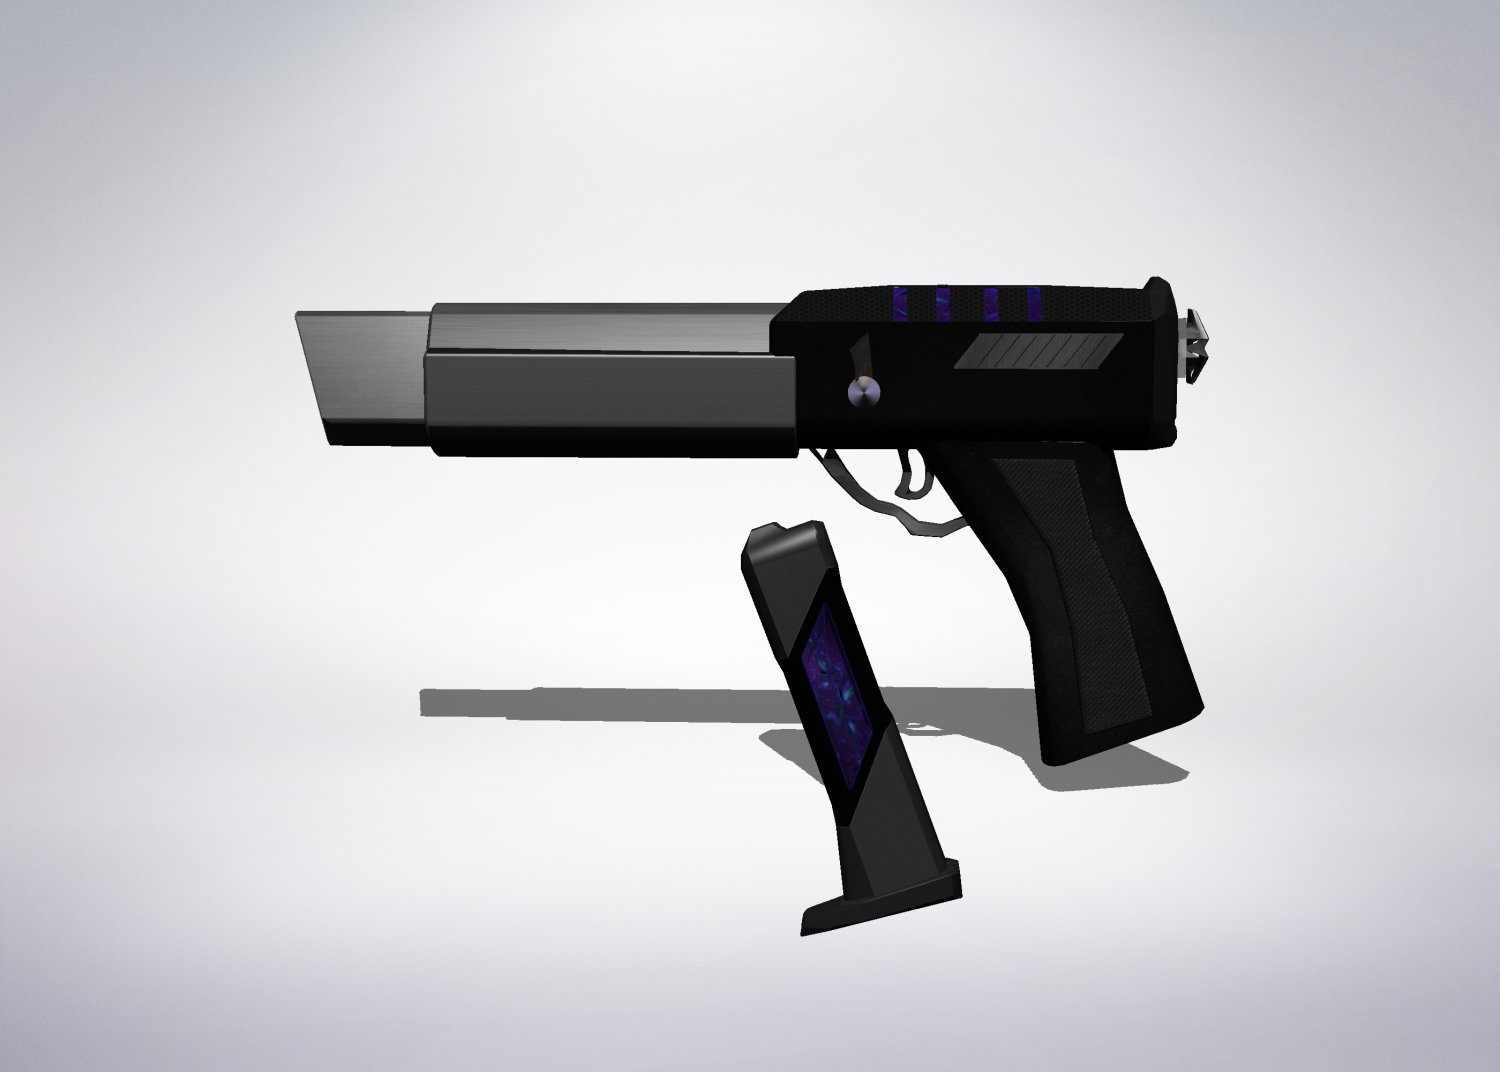 Black Plasma Gun Downloadfree3d Com